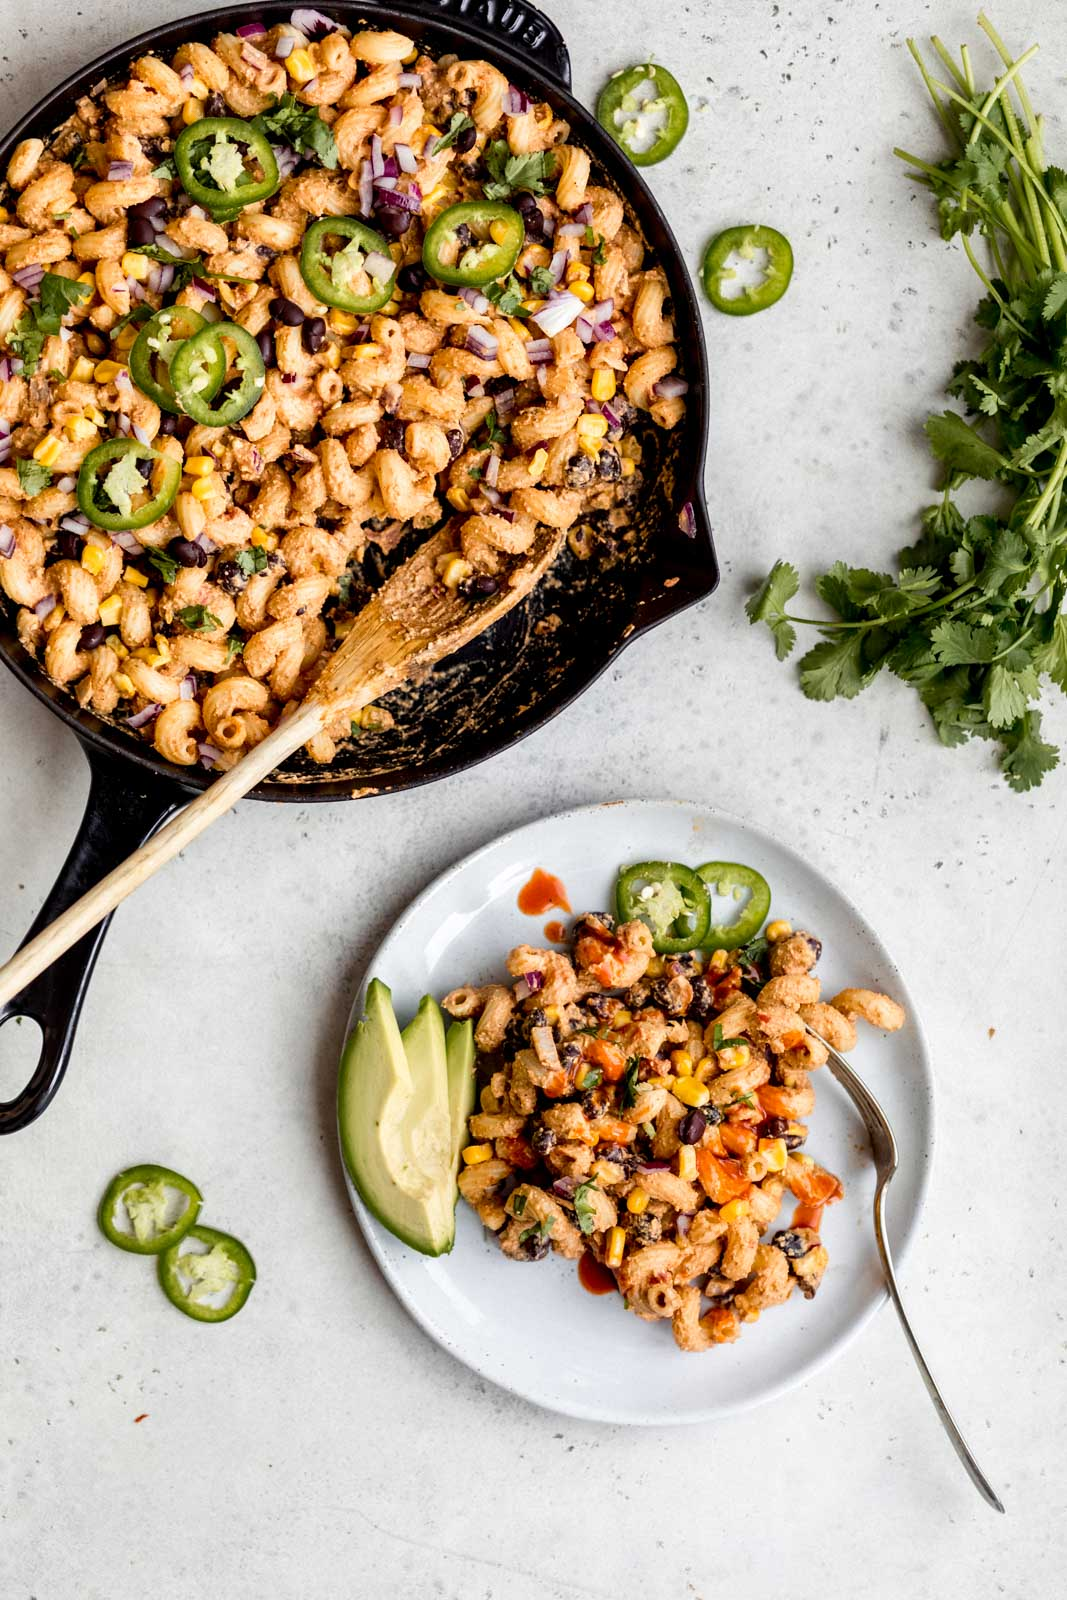 healthy vegan taco pasta on a plate and in a skillet